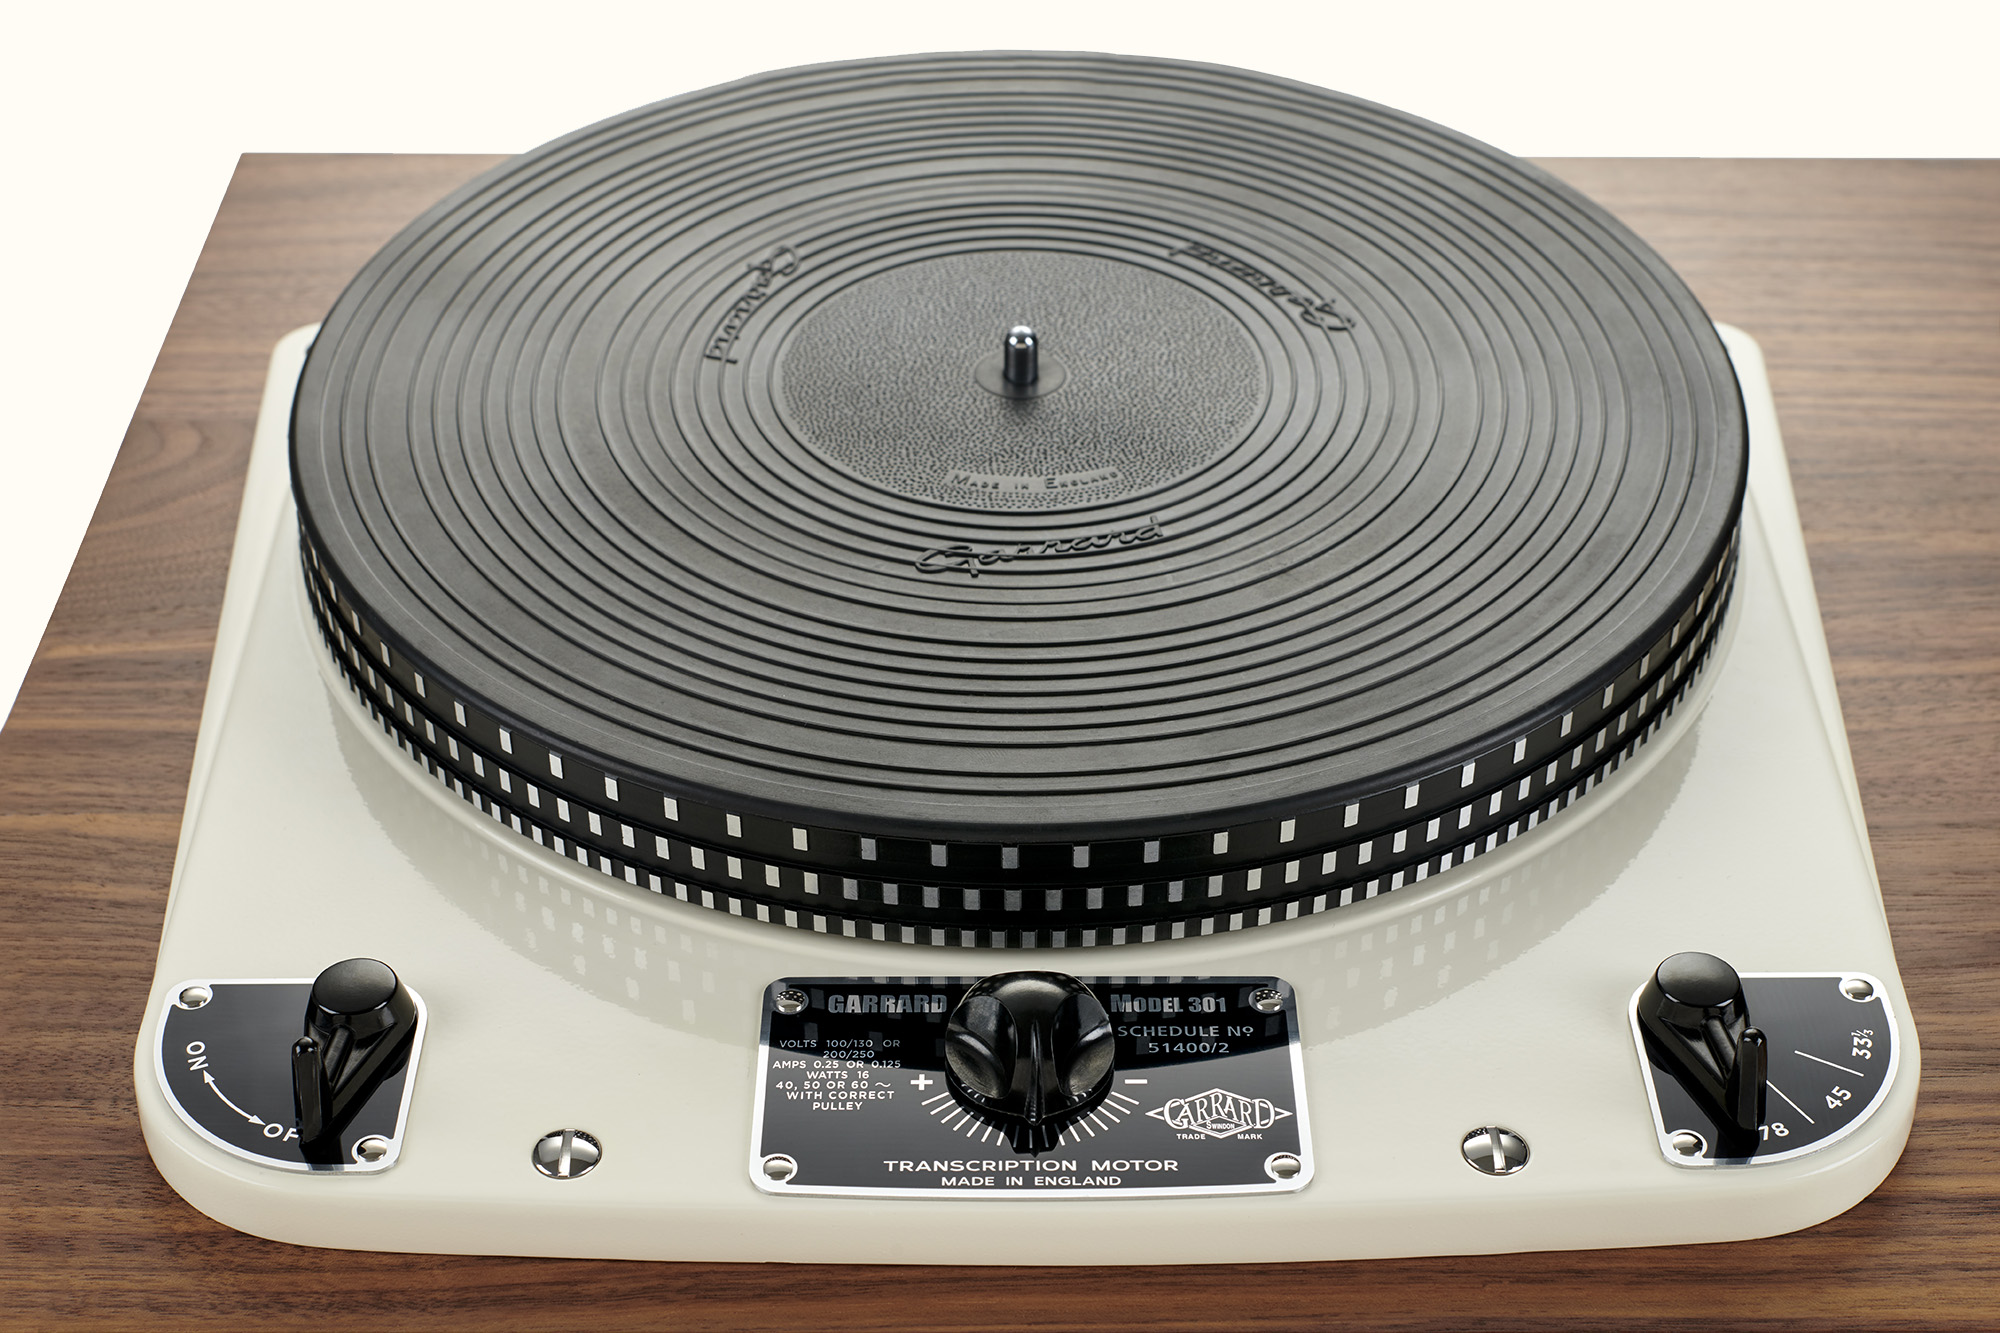 Garrard Turntables - The Legend Continues